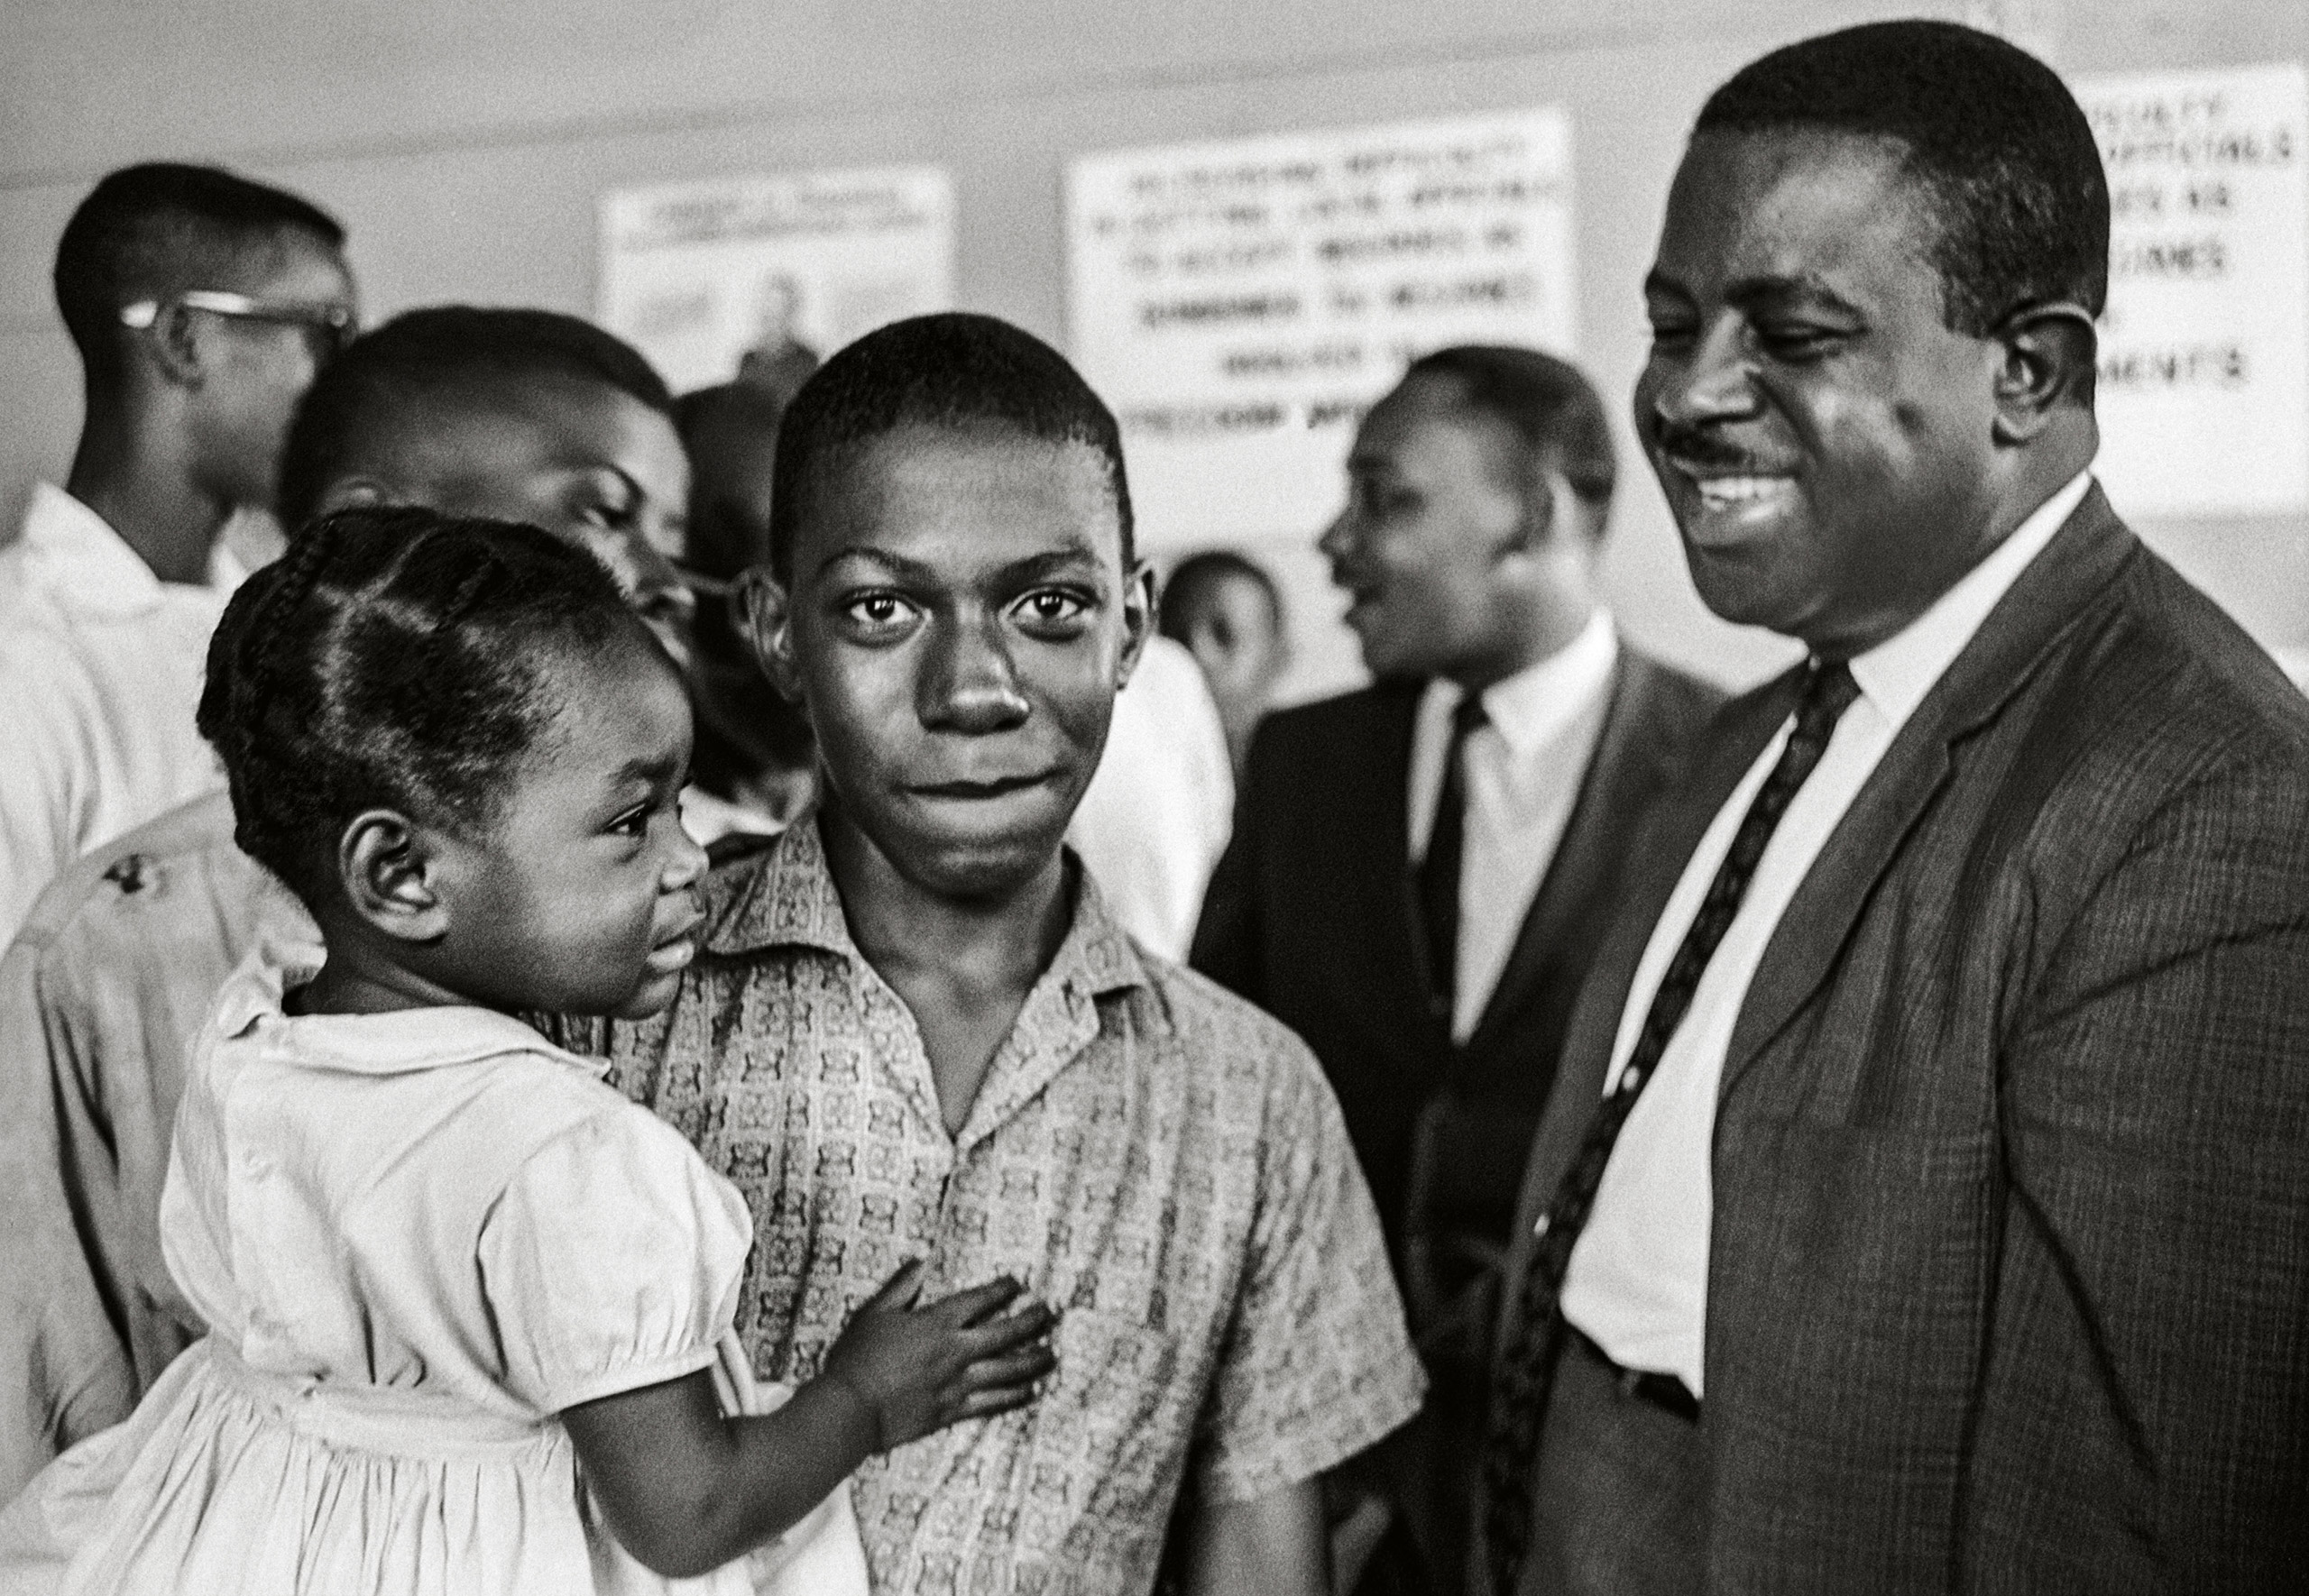 Never Published.                       The first time I photographed Dr. King,                      says Steve Schapiro,  I was not aware that                     he was going to be one of the most important people of our time.  In fact, Schapiro barely noticed him in the                     background when capturing this never-before-                     published image of Reverend Ralph Abernathy, Dr. King's best friend and advisor in Clarksdale, Mississippi,                     1963.